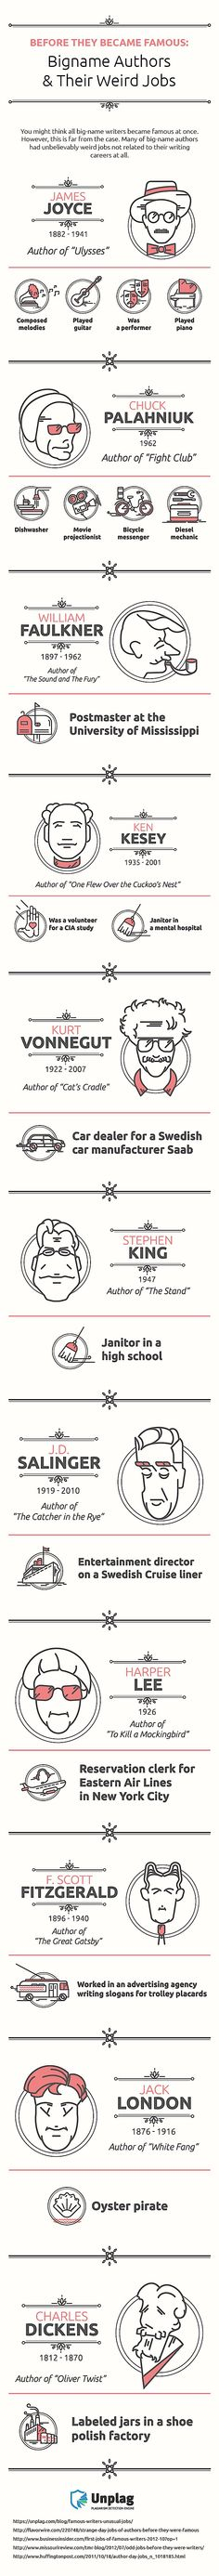 Unusual Jobs Of Famous Writers Infographic…